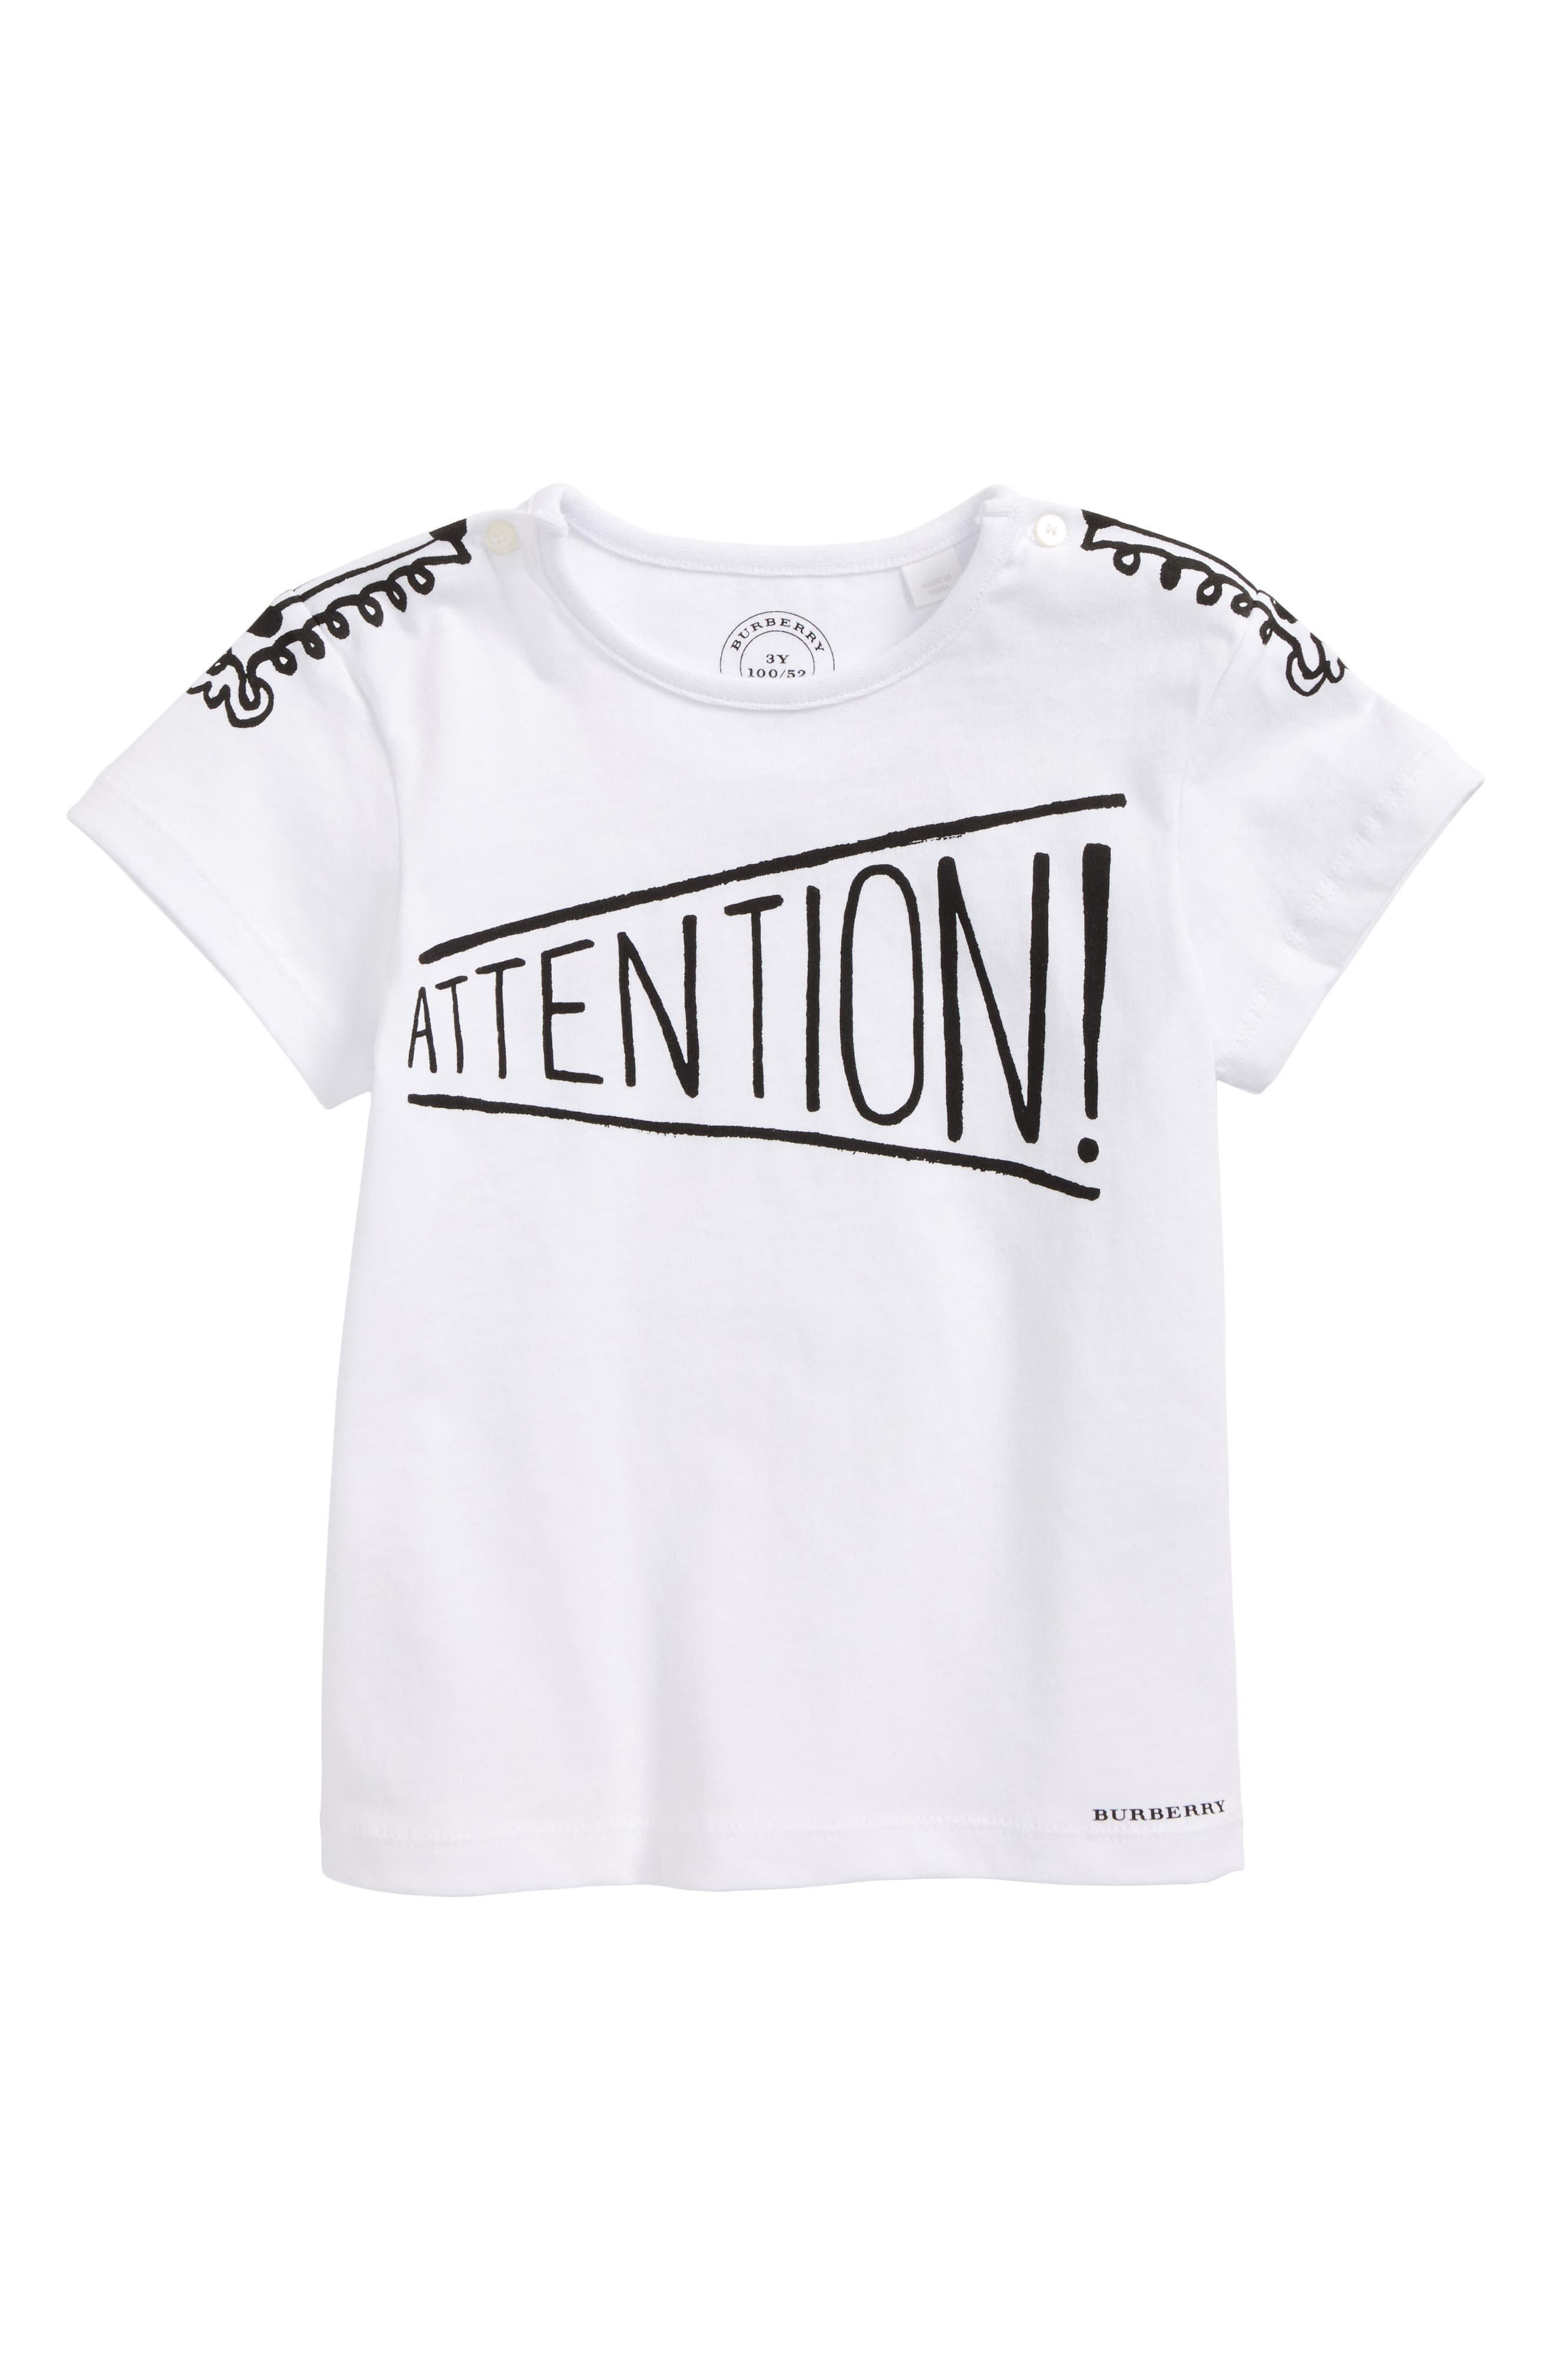 Attention T-Shirt,                         Main,                         color, White